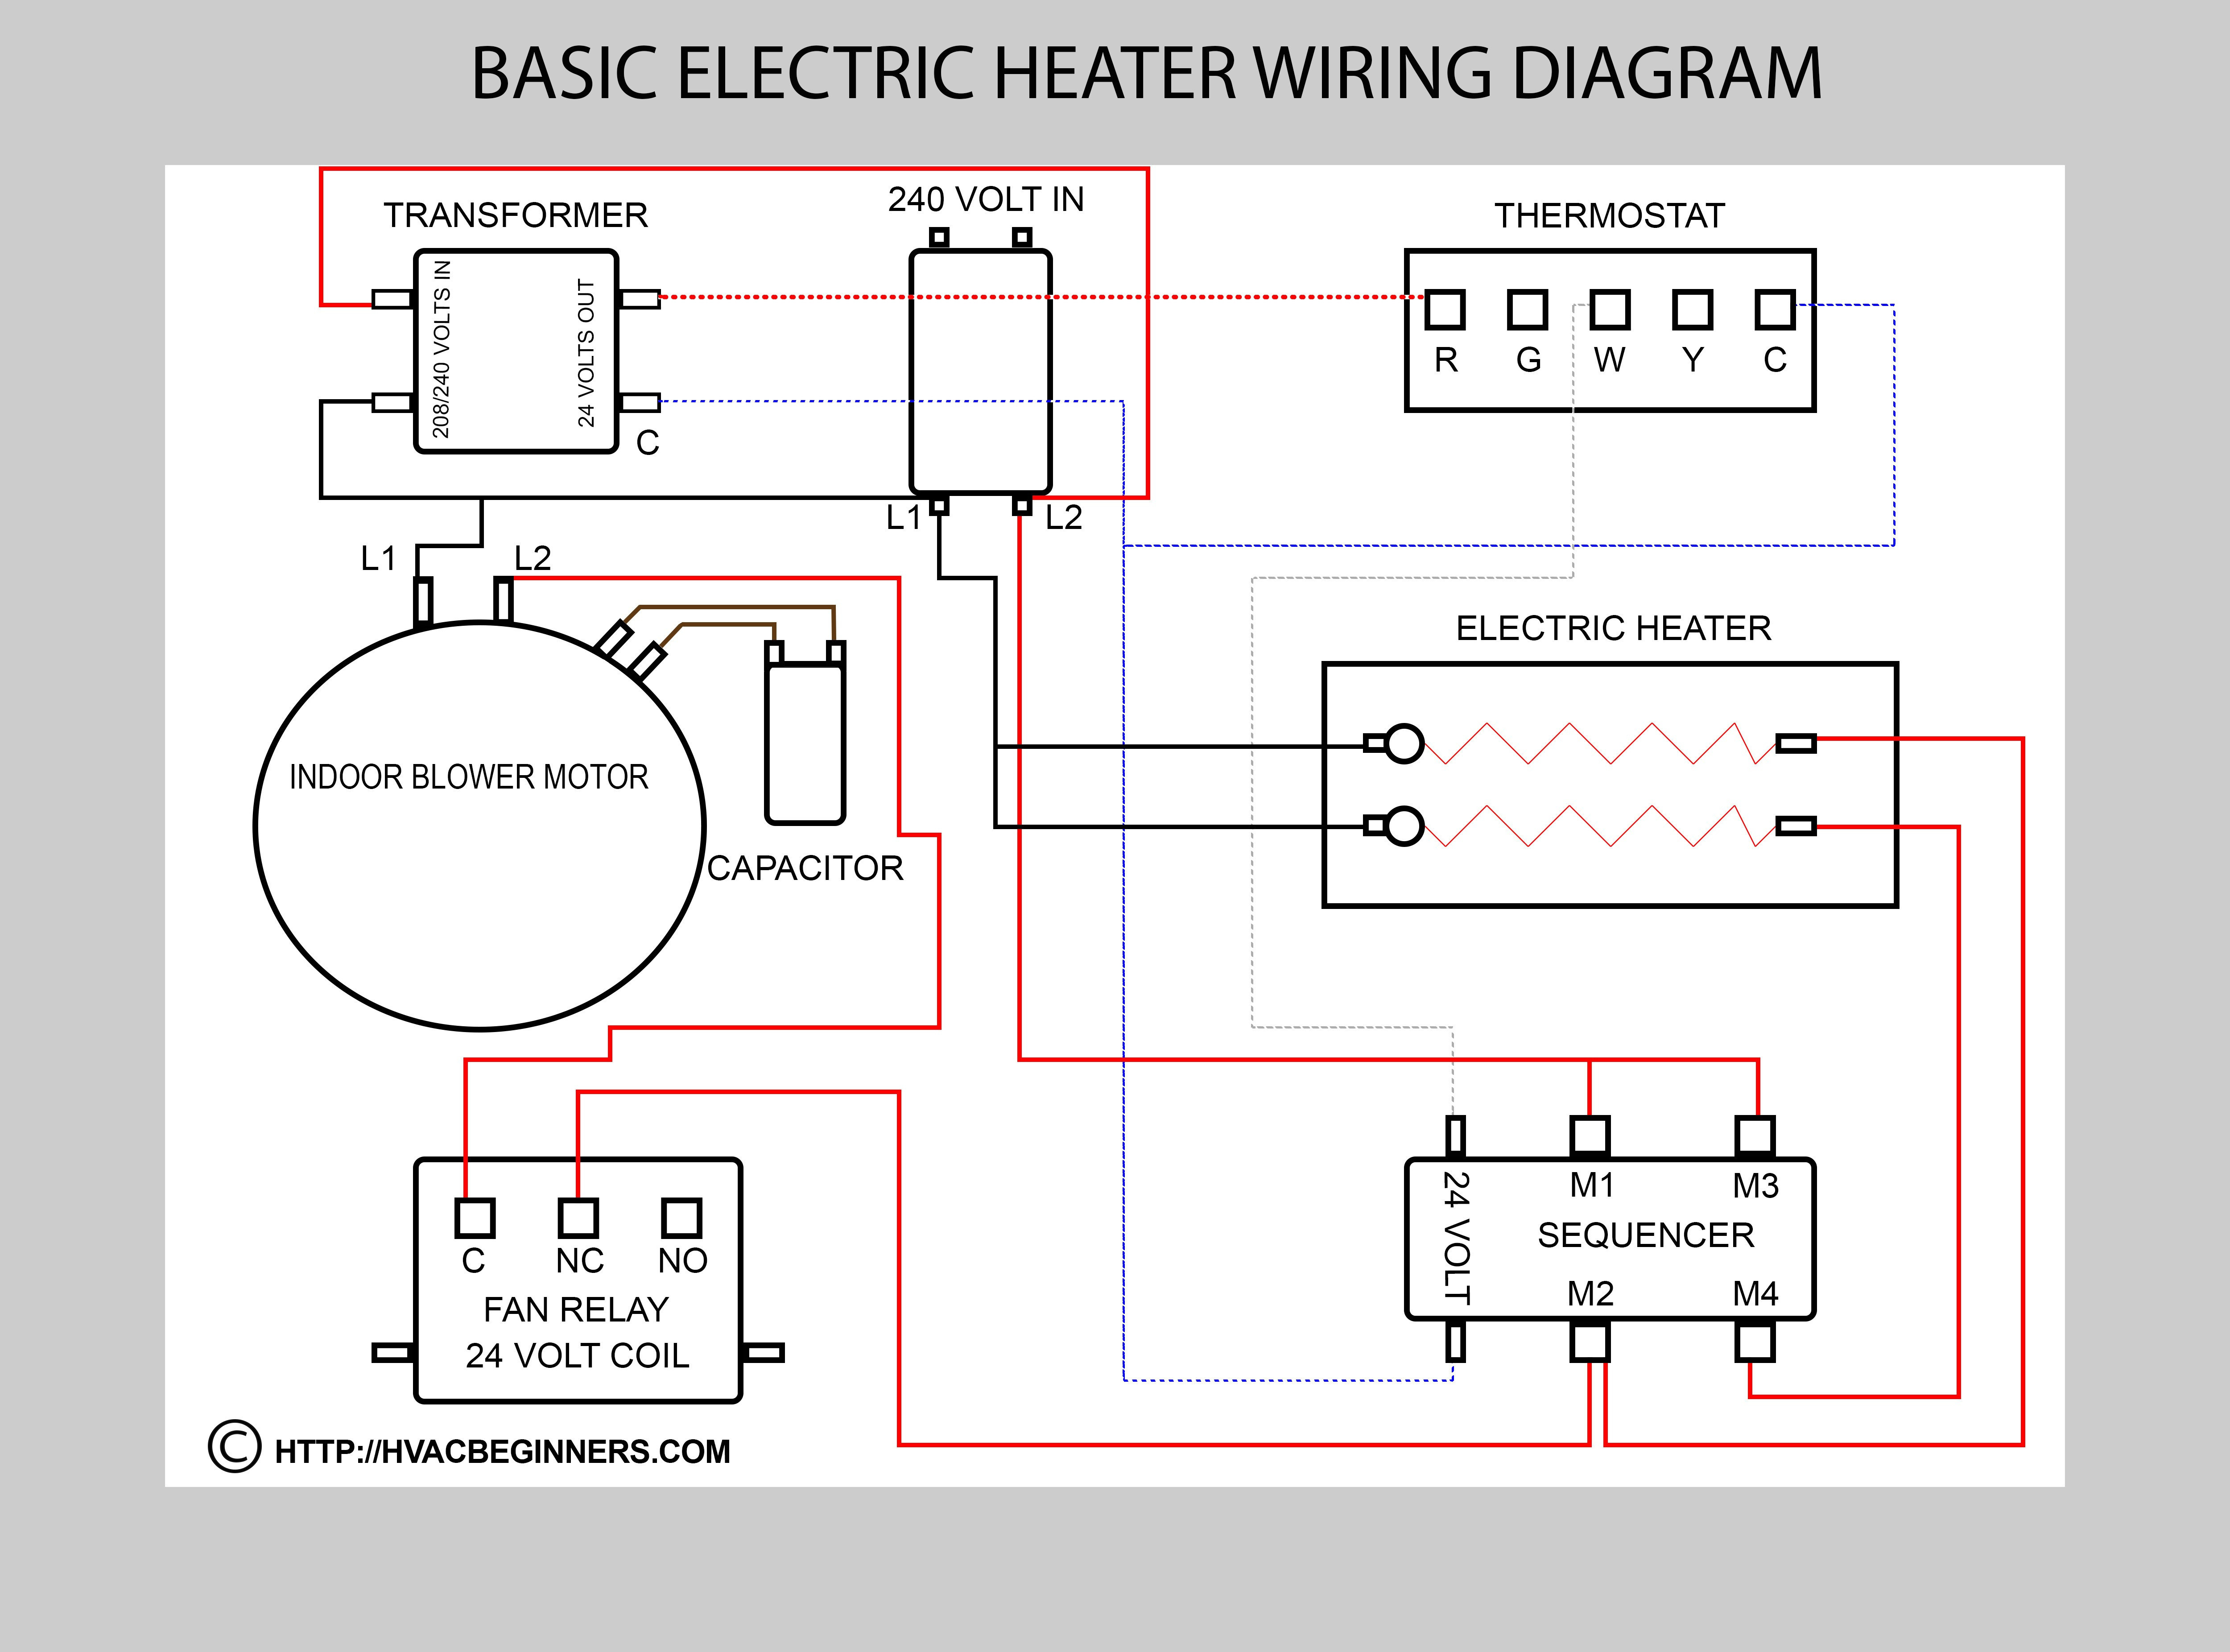 Nest 3Rd Generation Wiring Diagram Best Nest Wiring Diagram Heat - Nest Wiring Diagram For Heat Pump